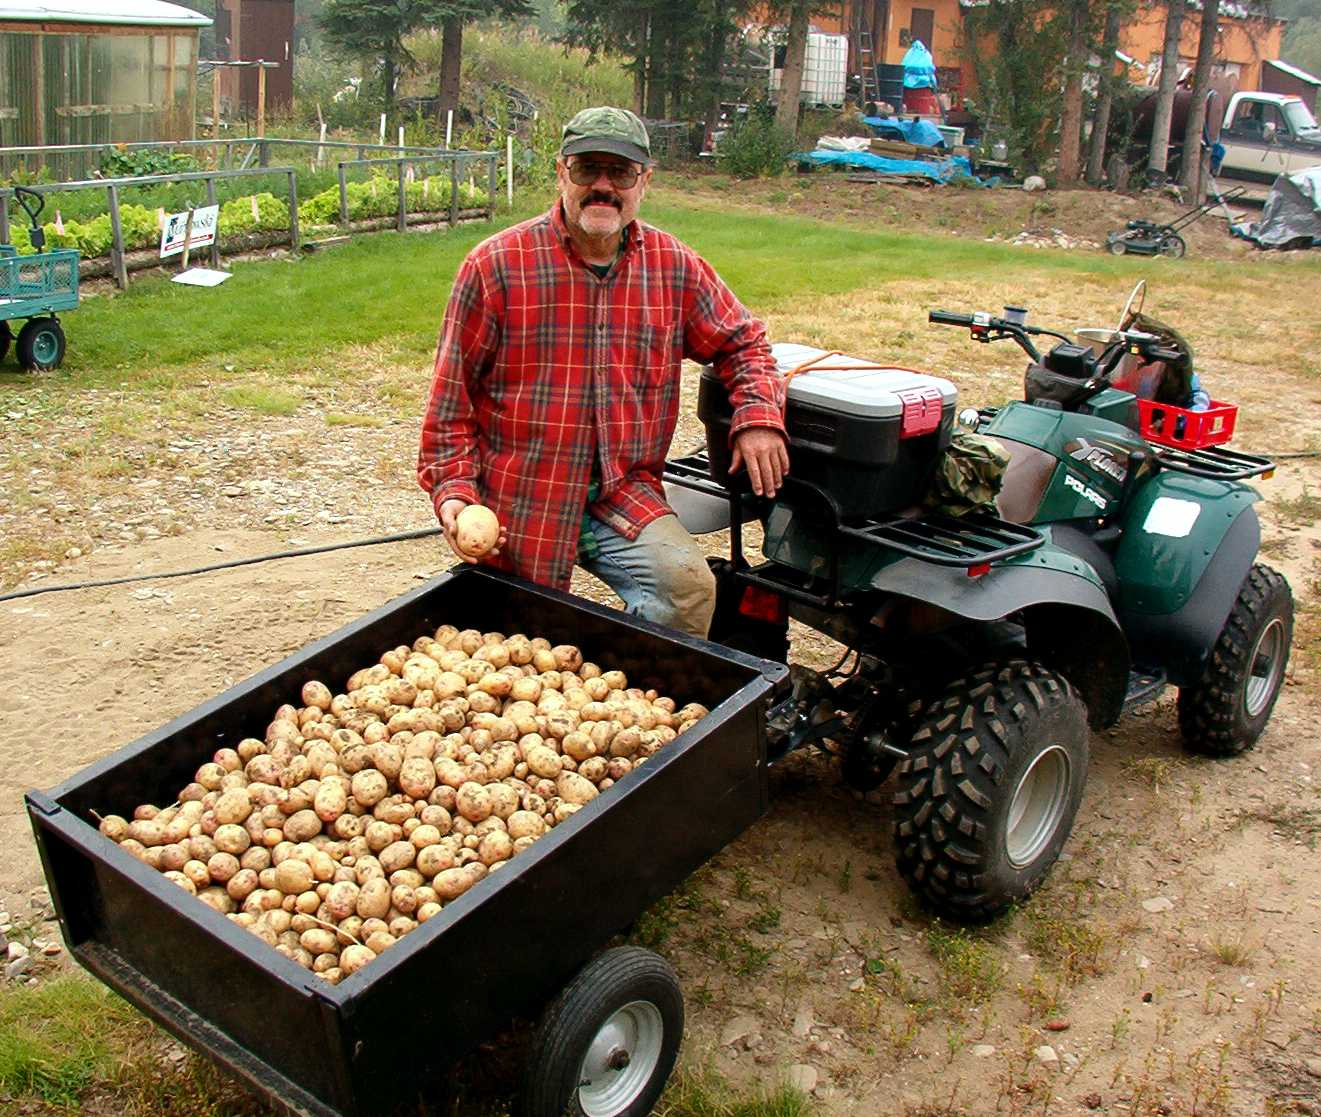 Freshly harvested potatoes or spuds for some